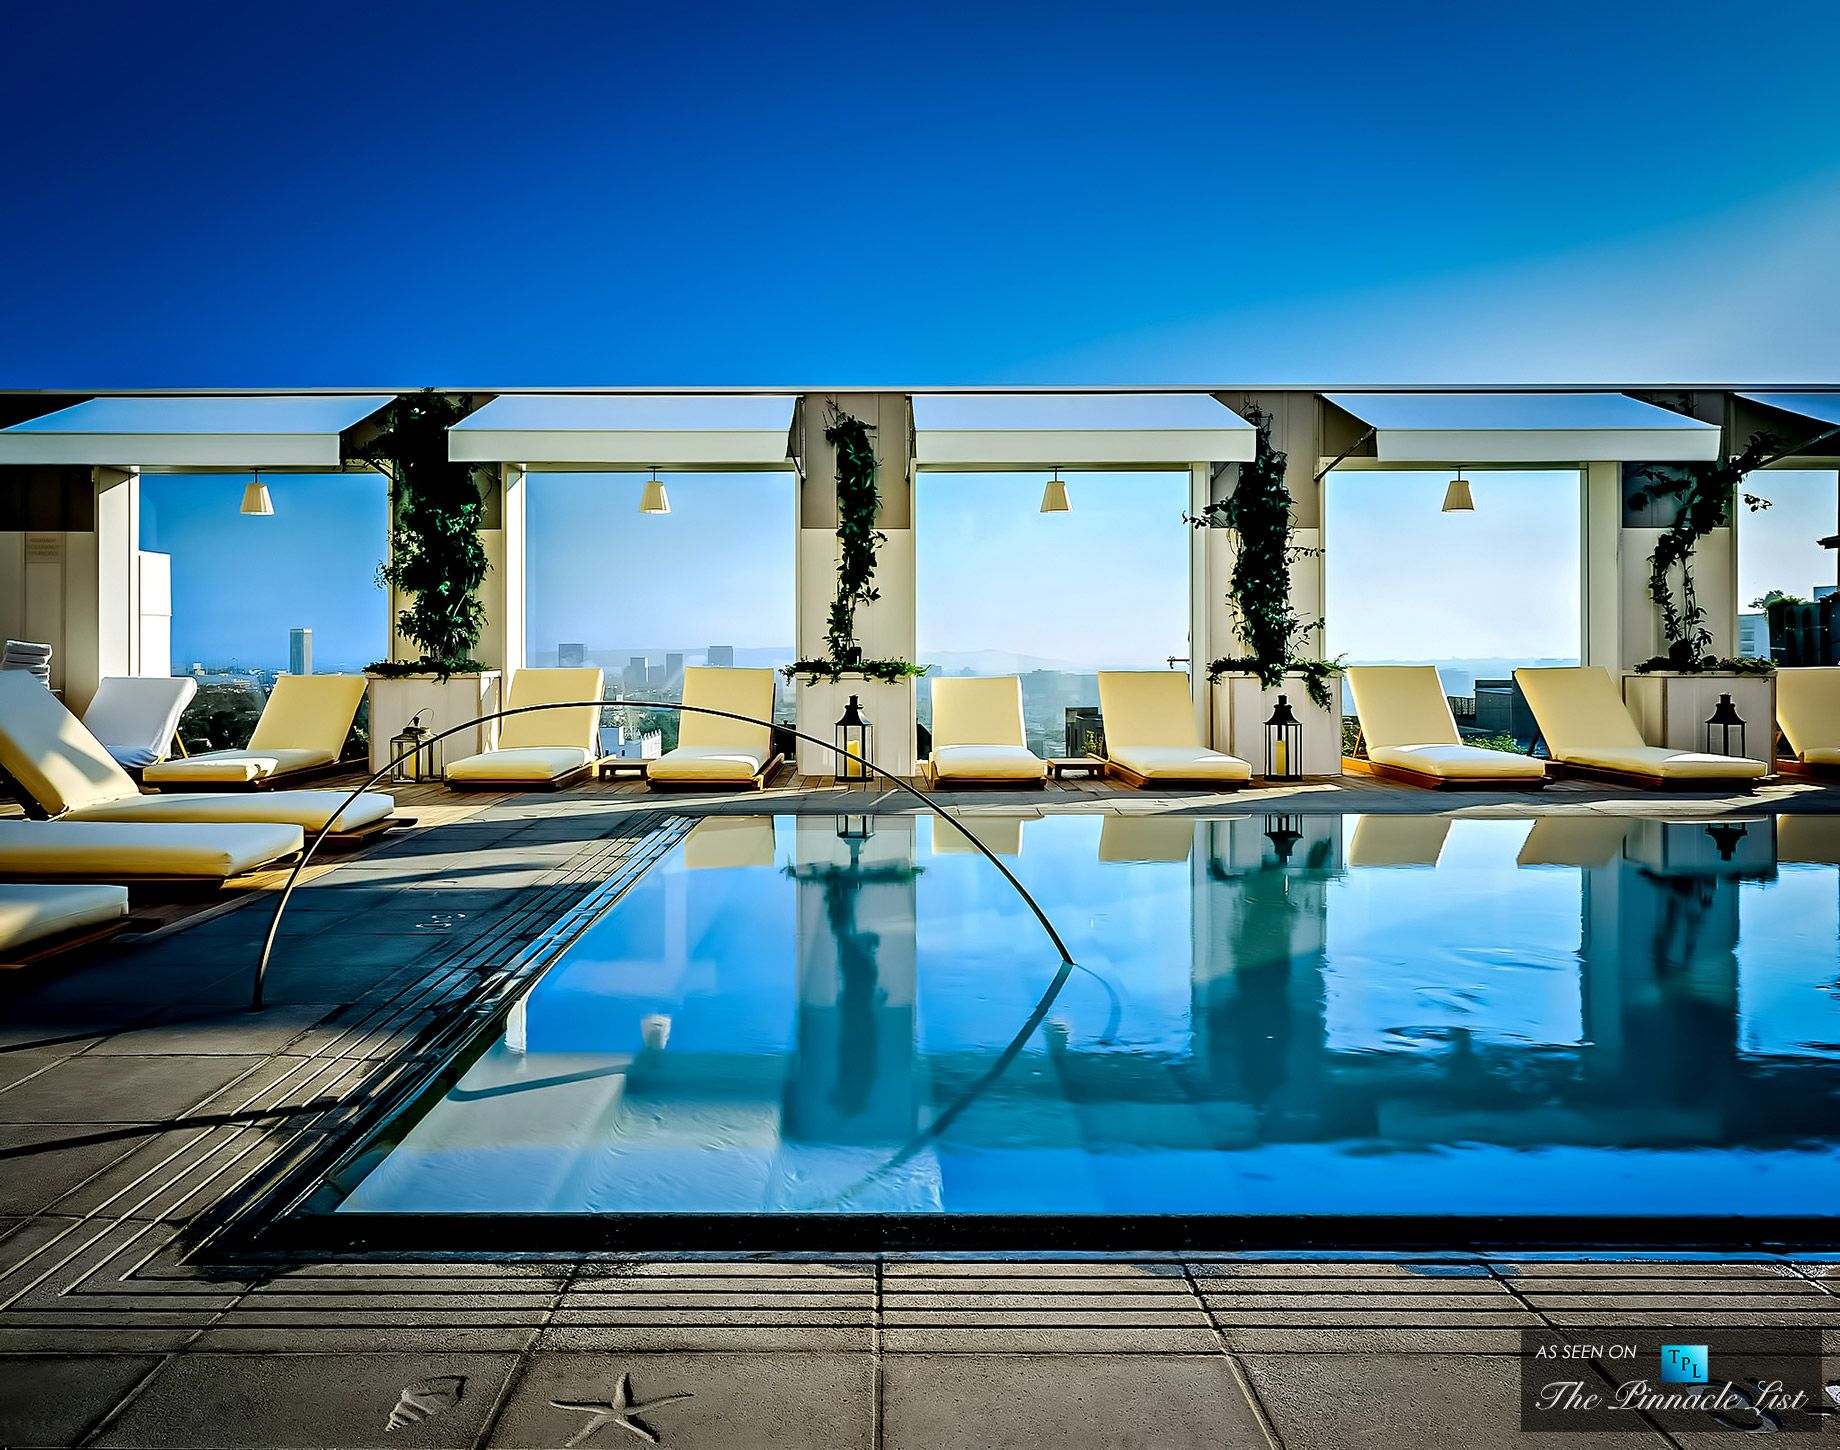 Mondrian Los Angeles Hotel Skybar Rooftop Pool